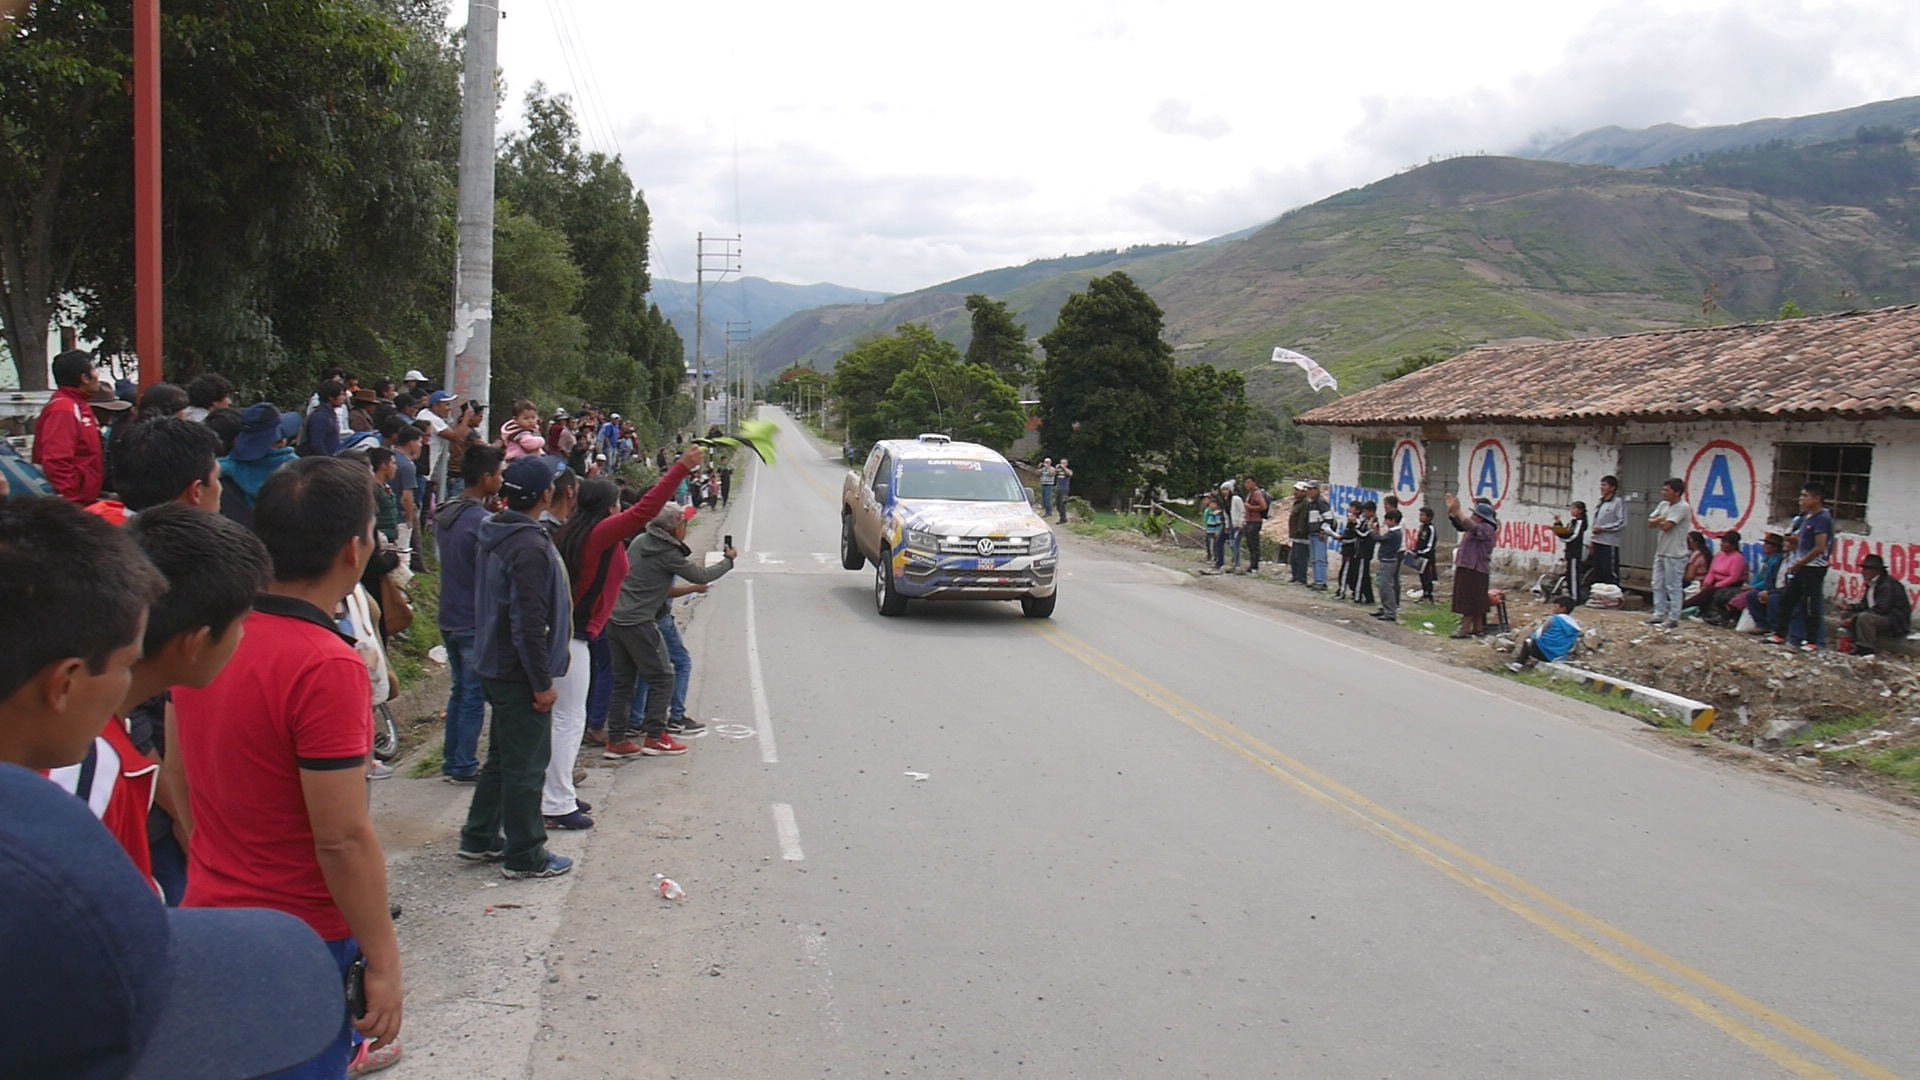 ... and at the landing. The team leads the 'Rally Caminos del Inca' in the category 'Camionetas'.